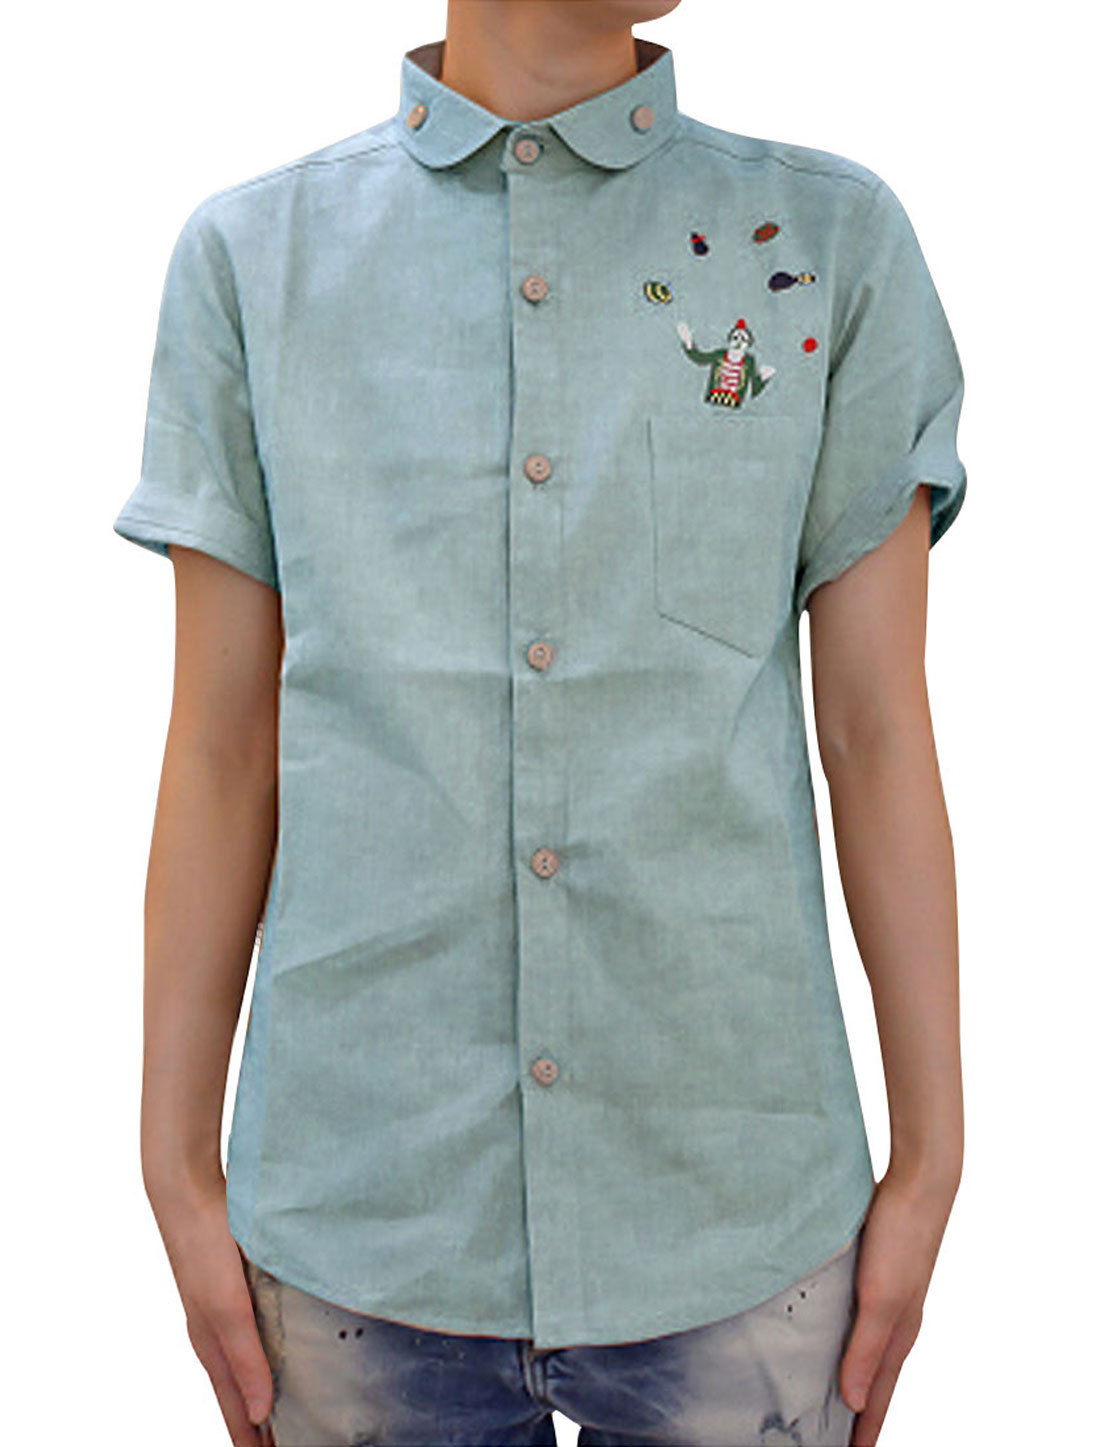 Men Point Collar Single Breasted Short Sleeve Chest Pocket Round Hem Embroidery Clown Shirt Pale Blue S